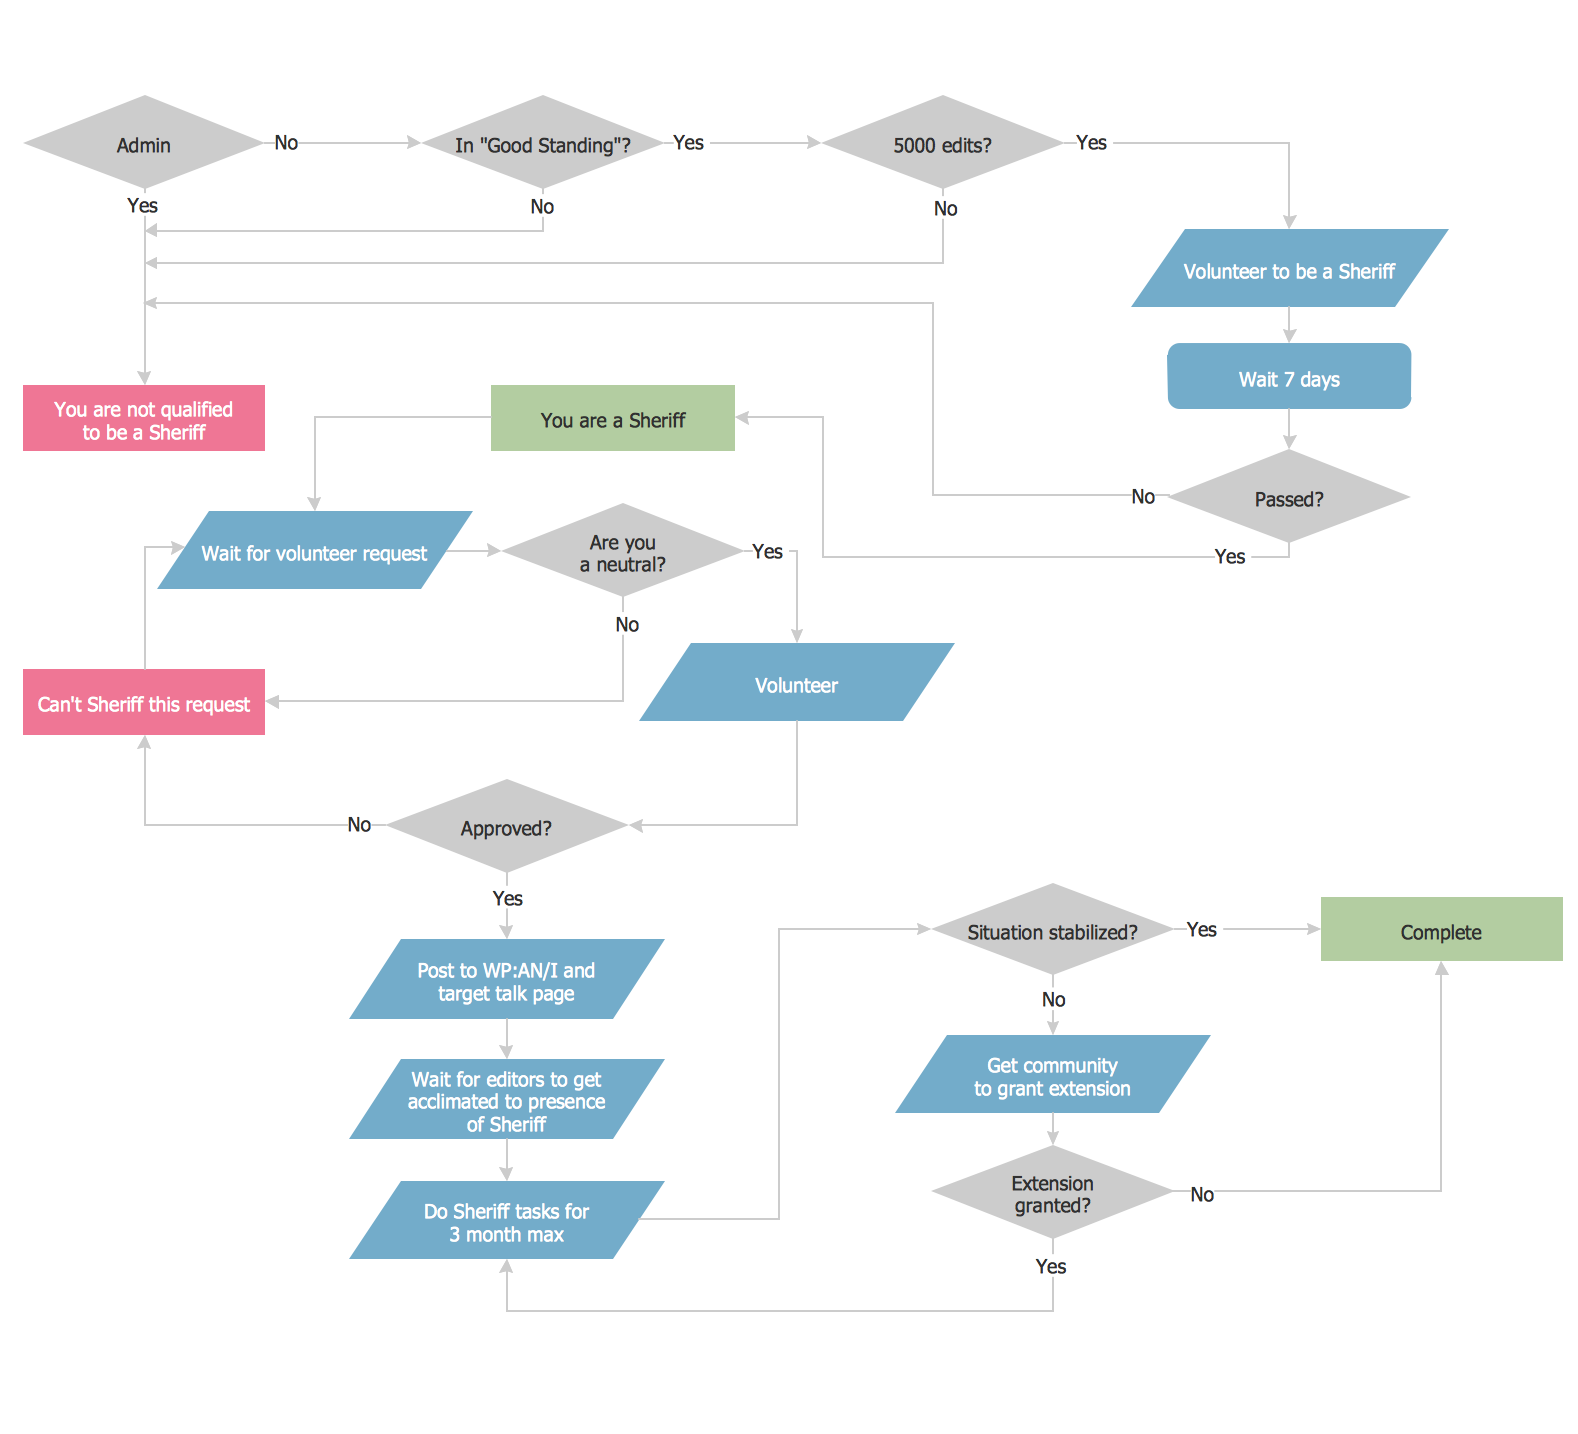 flow chart diagram example: Process flow chart